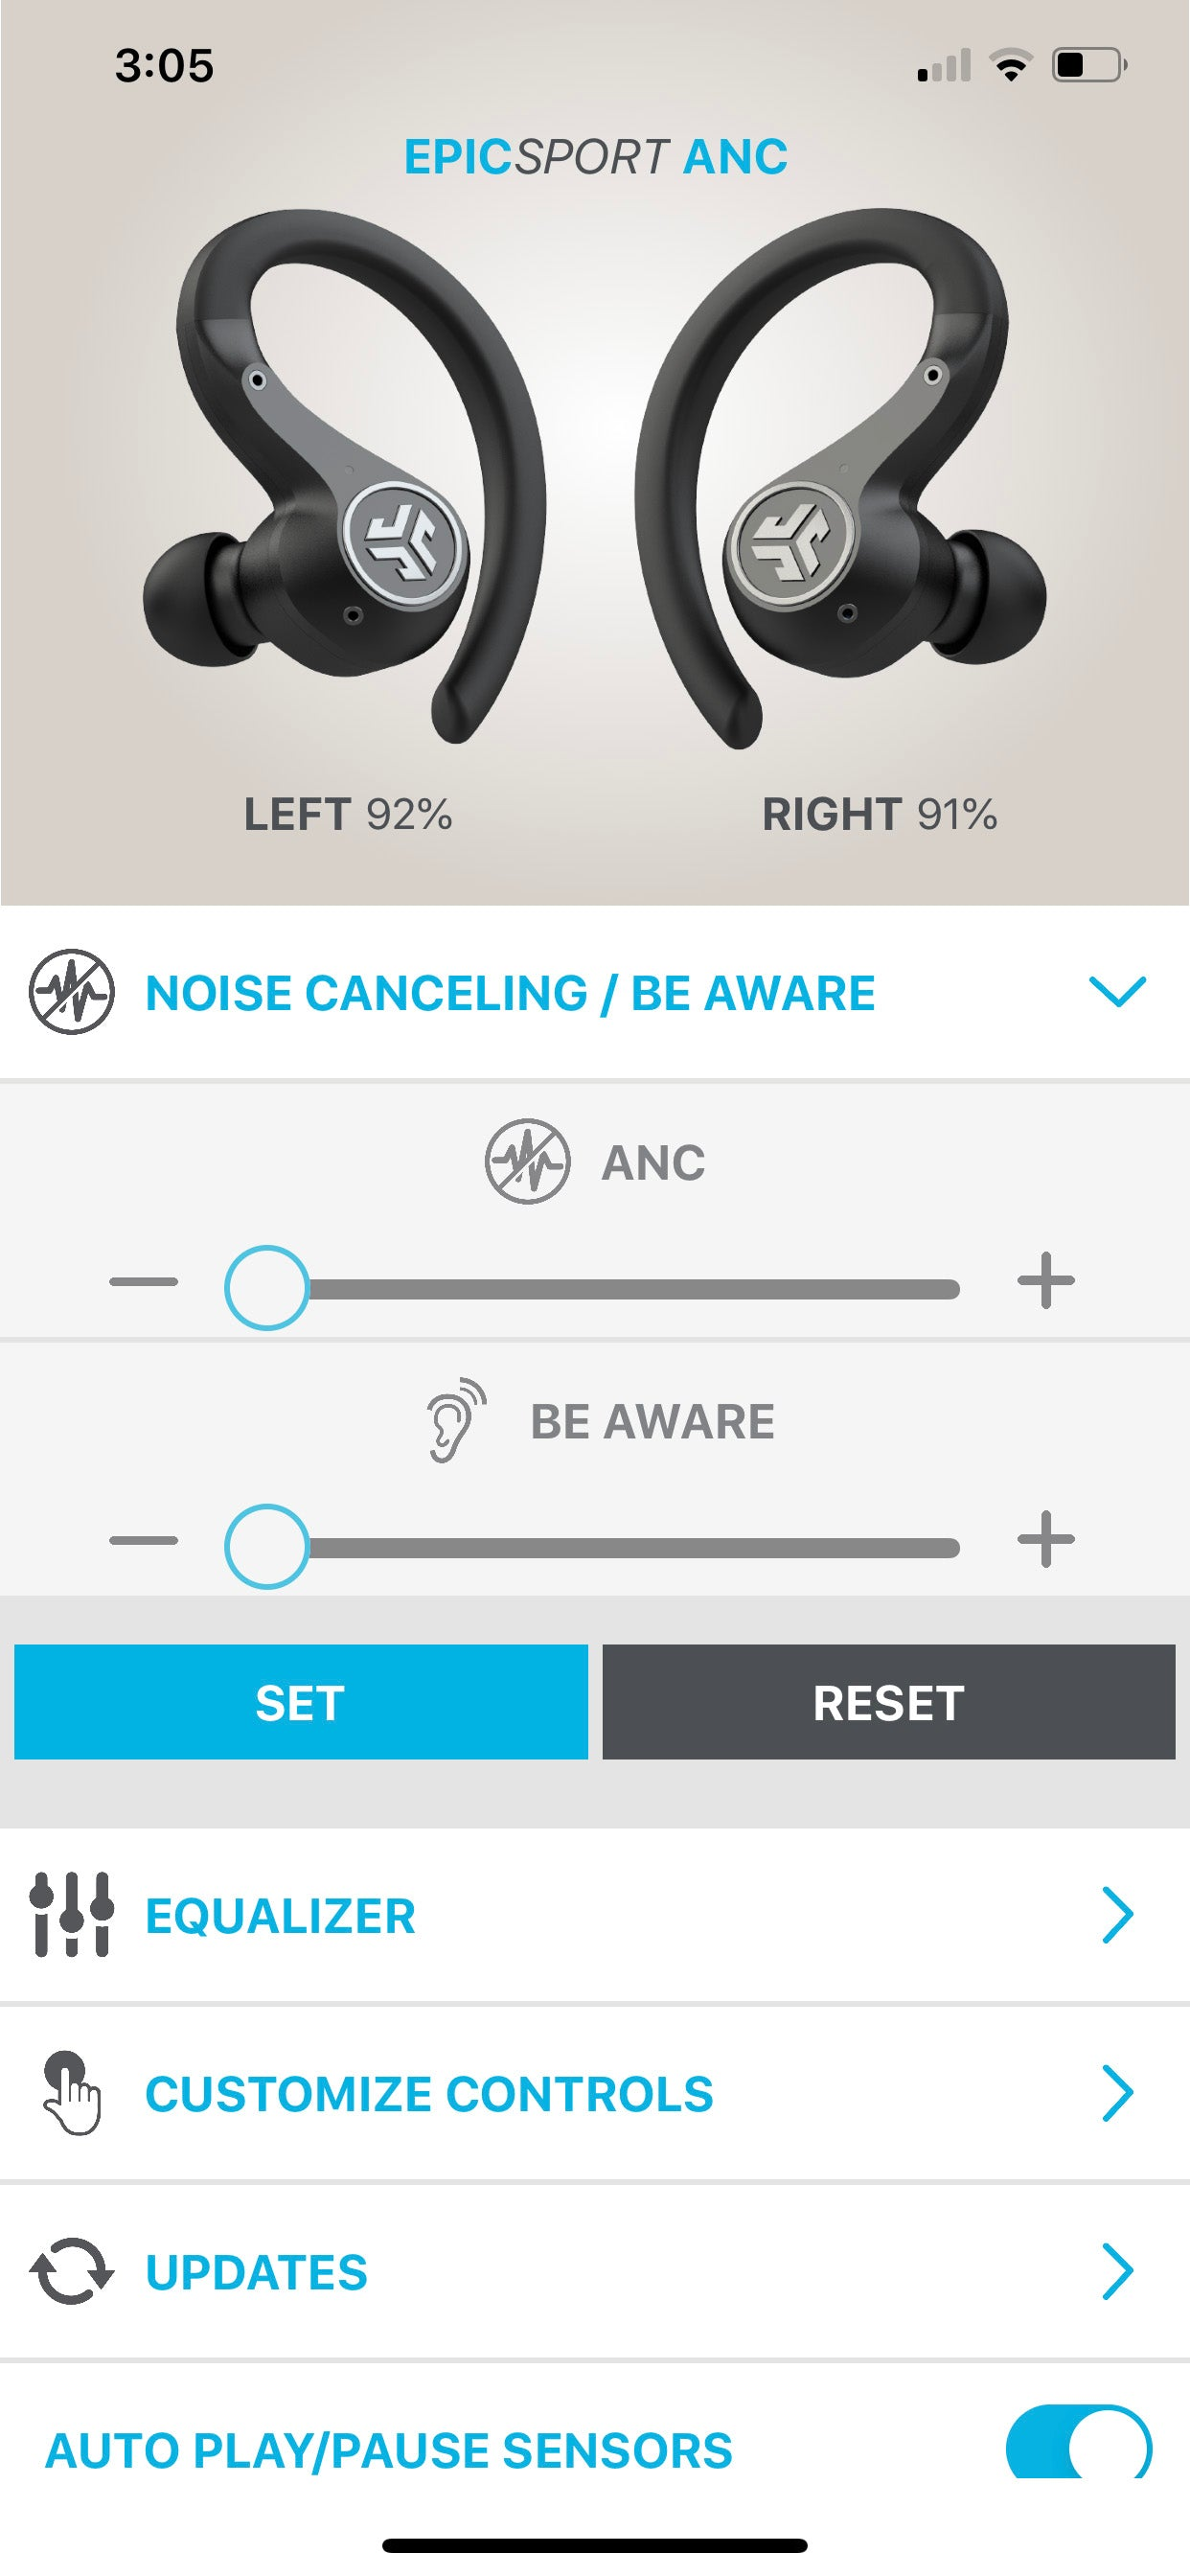 Screenshot of app showing ANC and Be Aware increase/decrease toggling